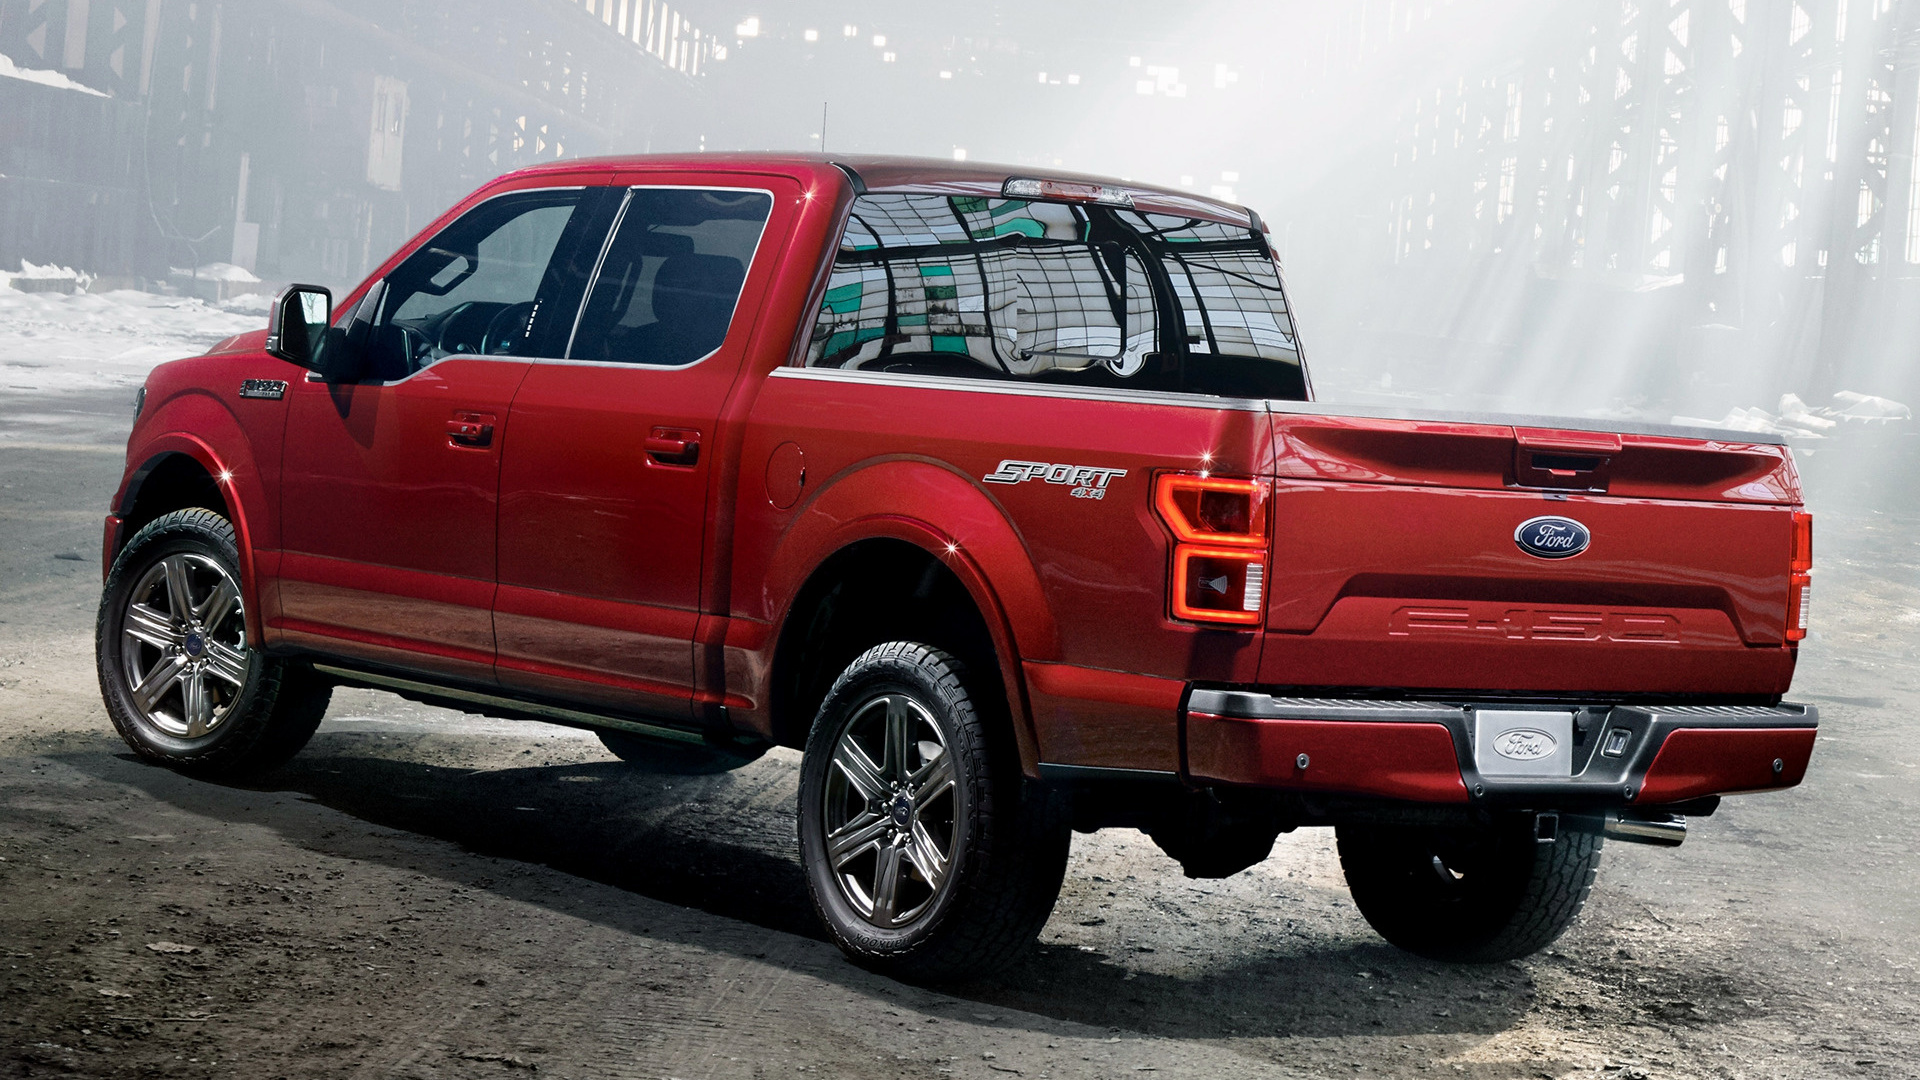 Ford F-150 Lariat Sport SuperCrew (2018) Wallpapers and HD Images - Car Pixel